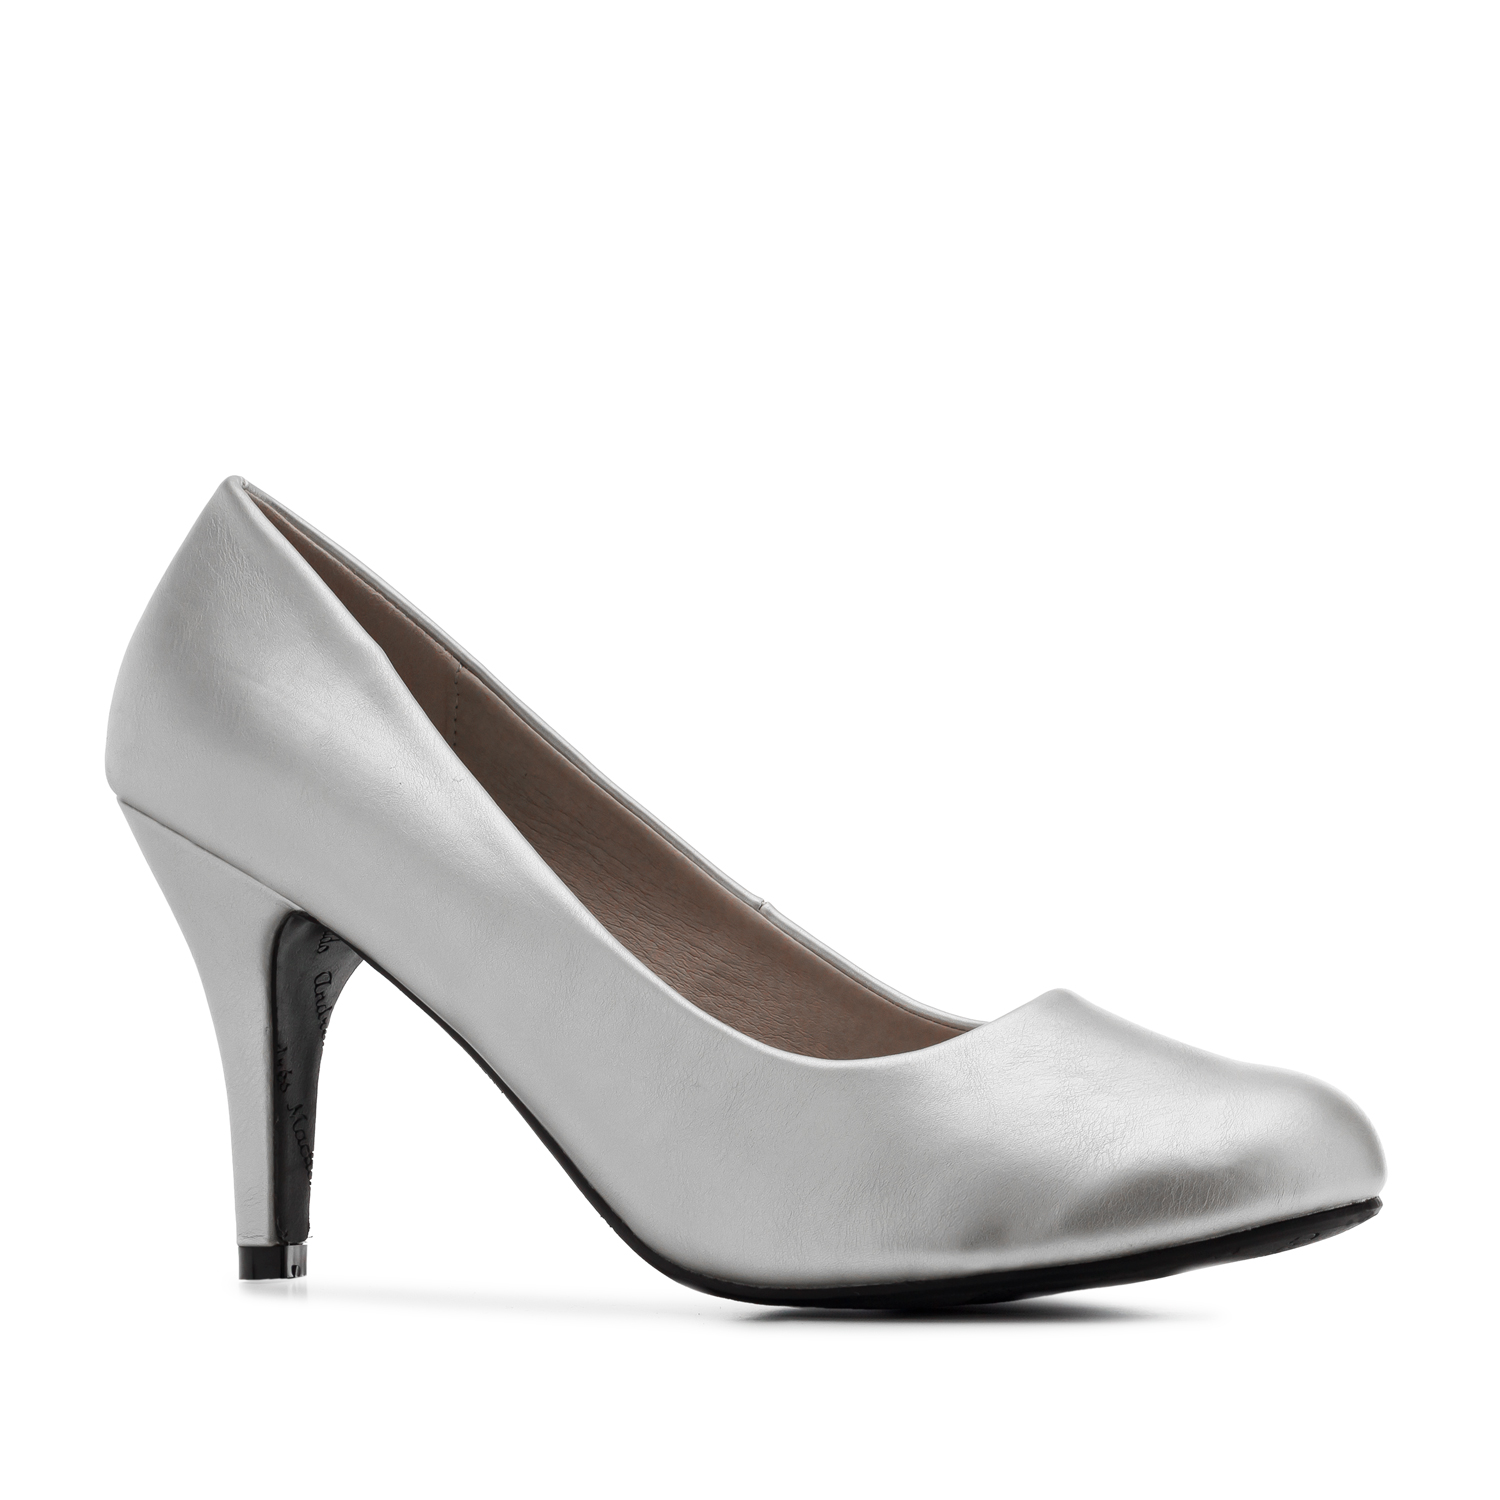 Retro Pumps in Silver faux Soft-Leather